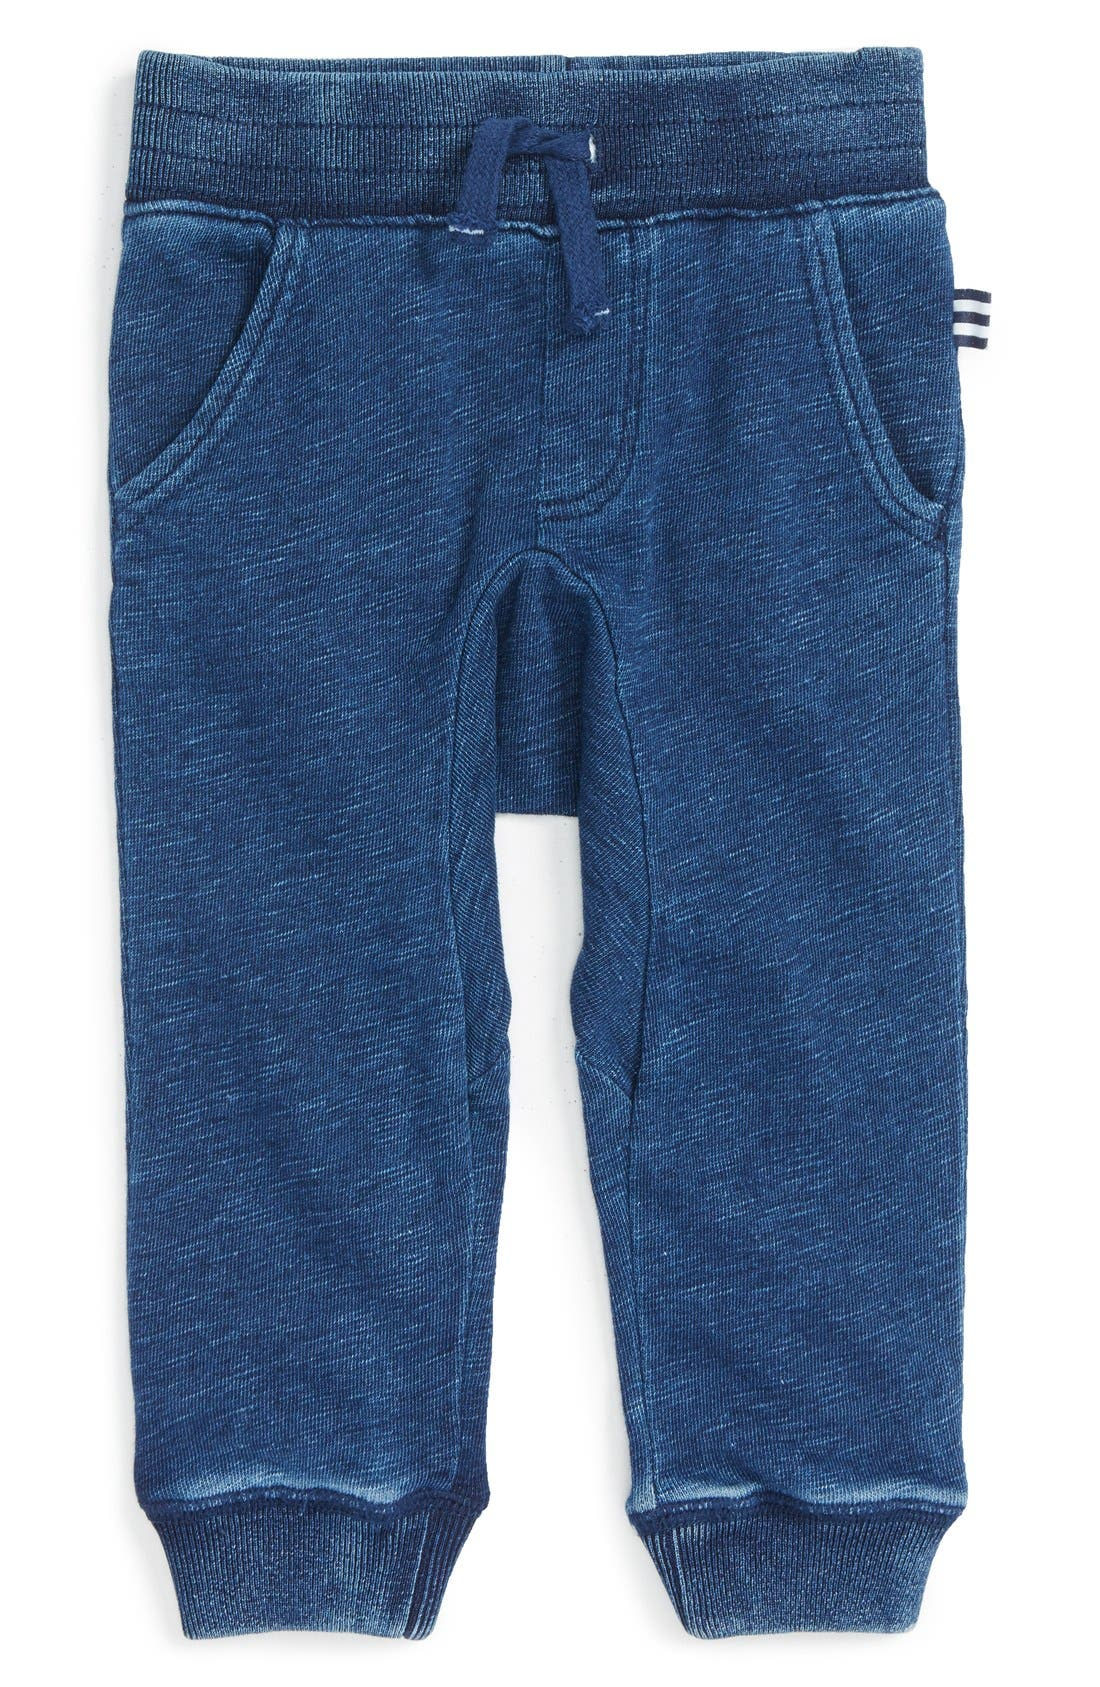 Cotton Blend Jogger Pants,                         Main,                         color,